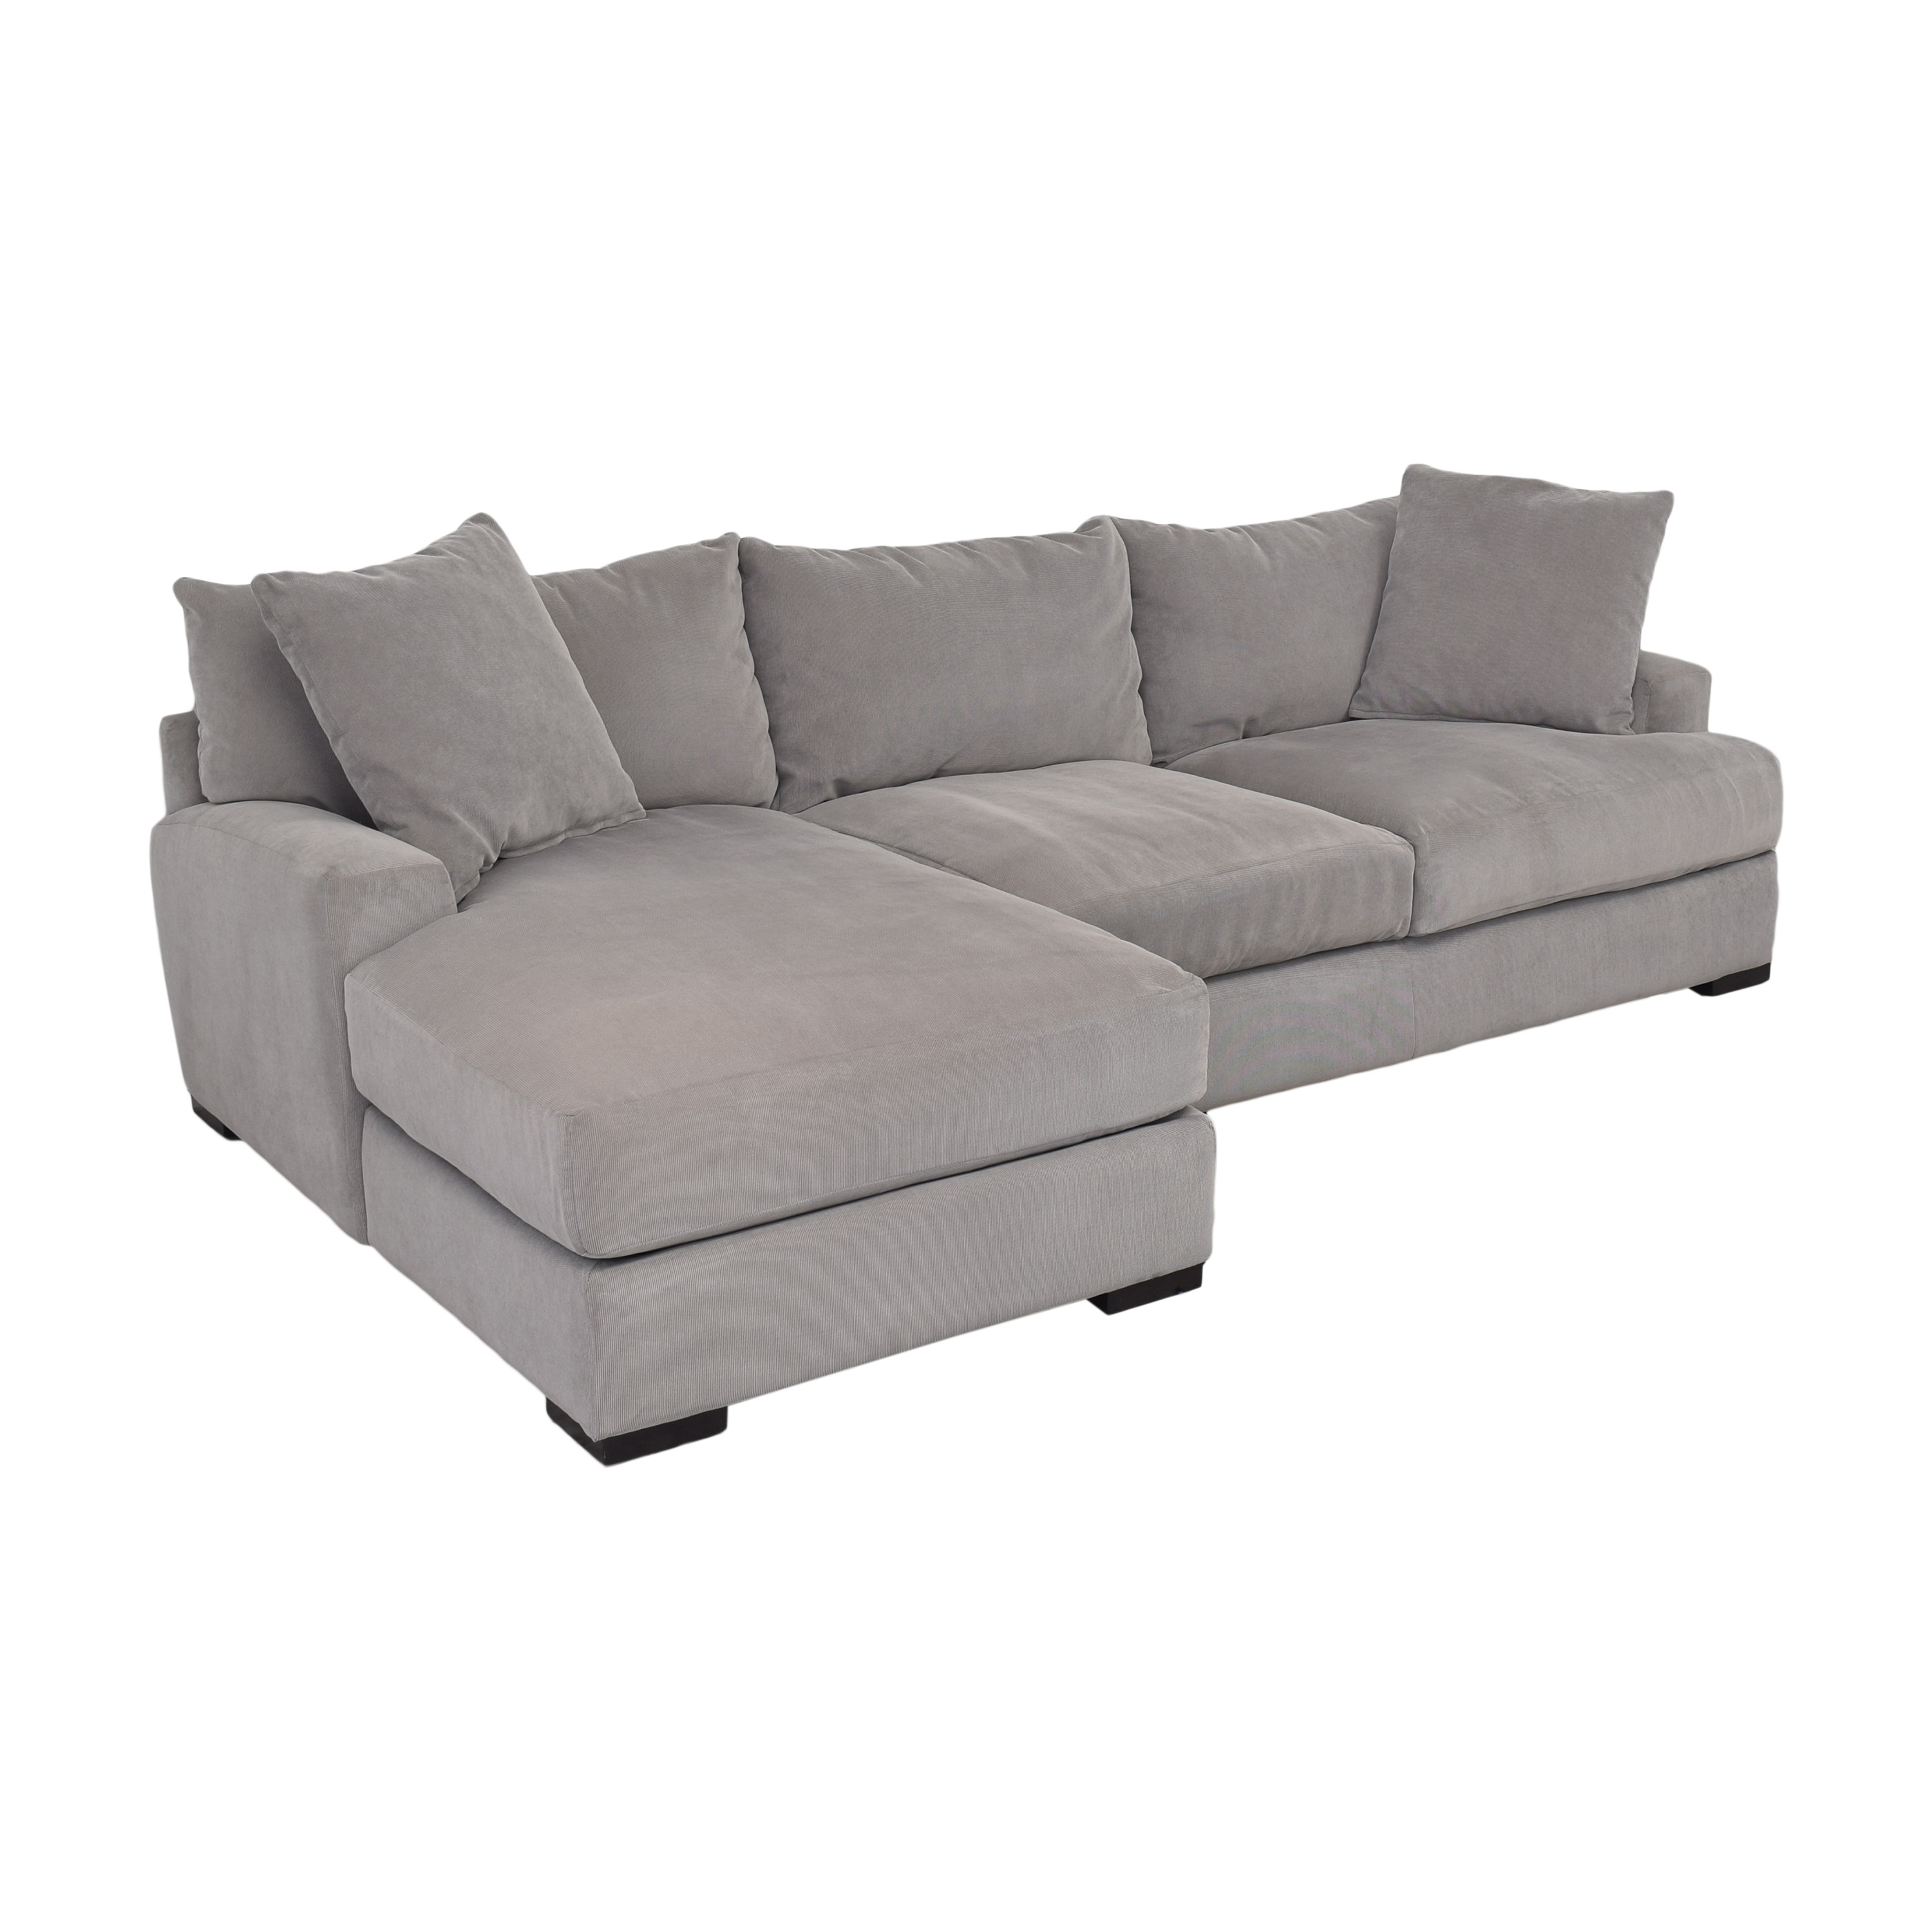 Macy's Macy's Rhyder Chaise Sectional Sofa for sale